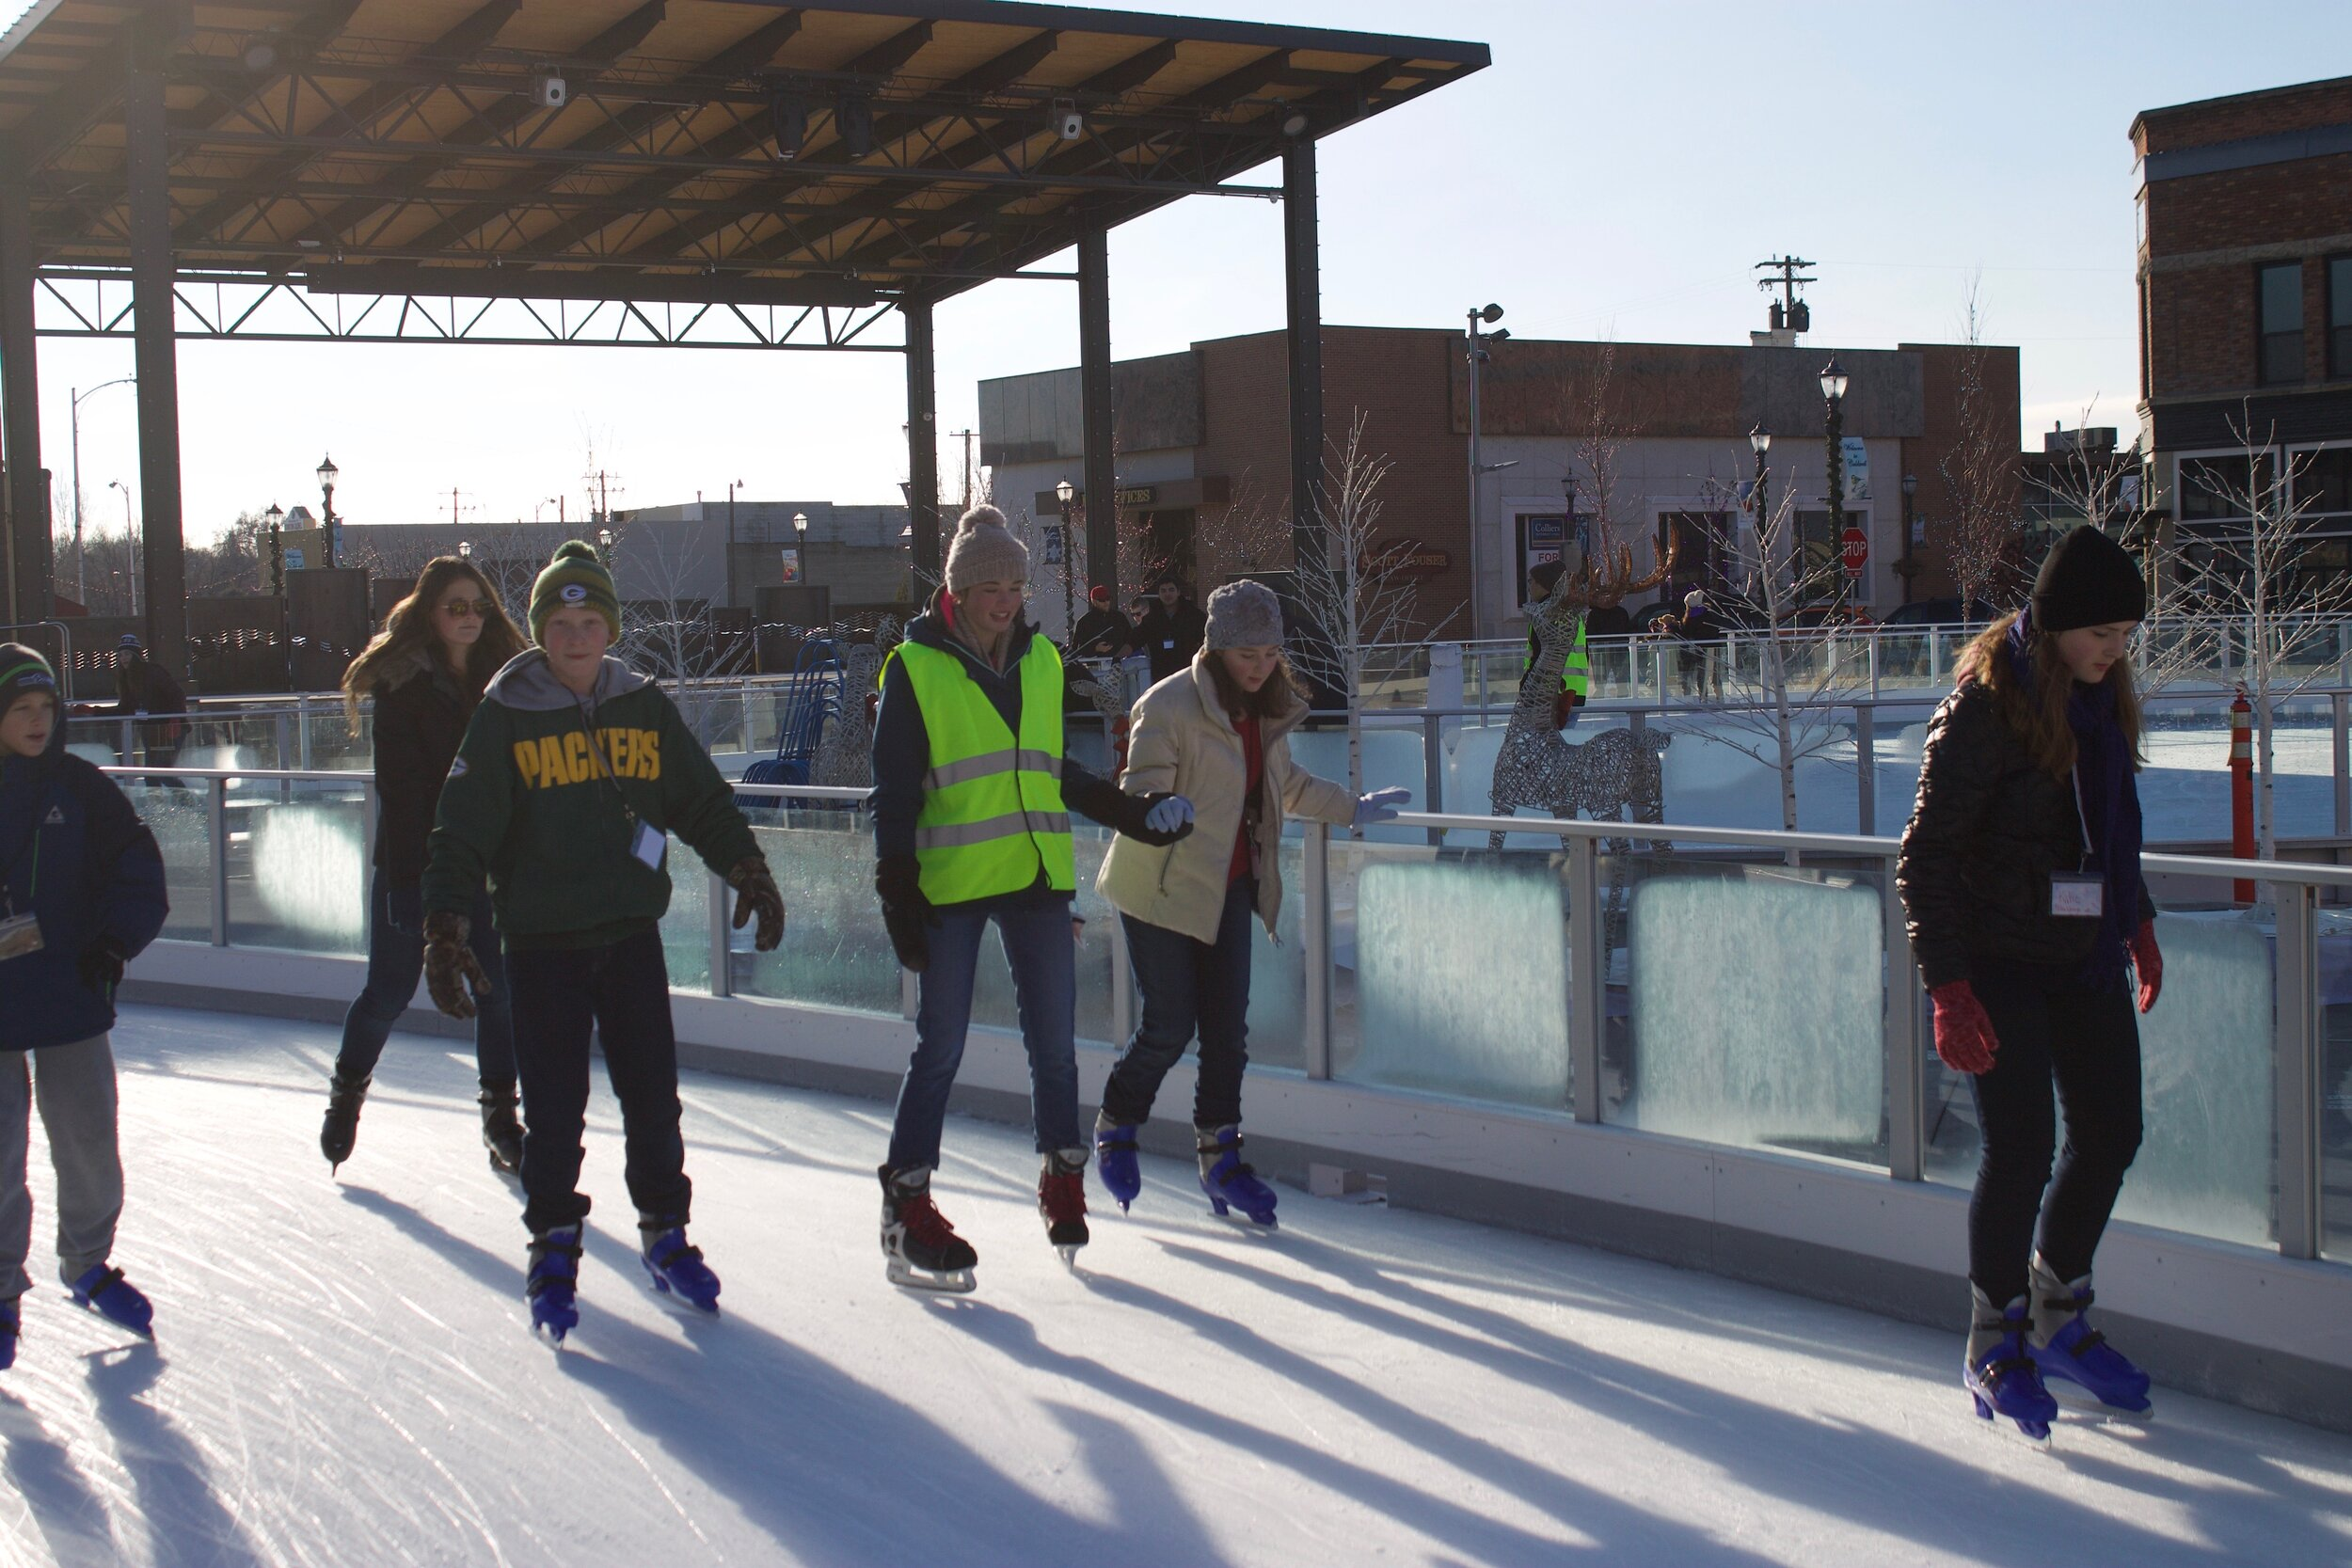 Volunteers offer additional support during free skate